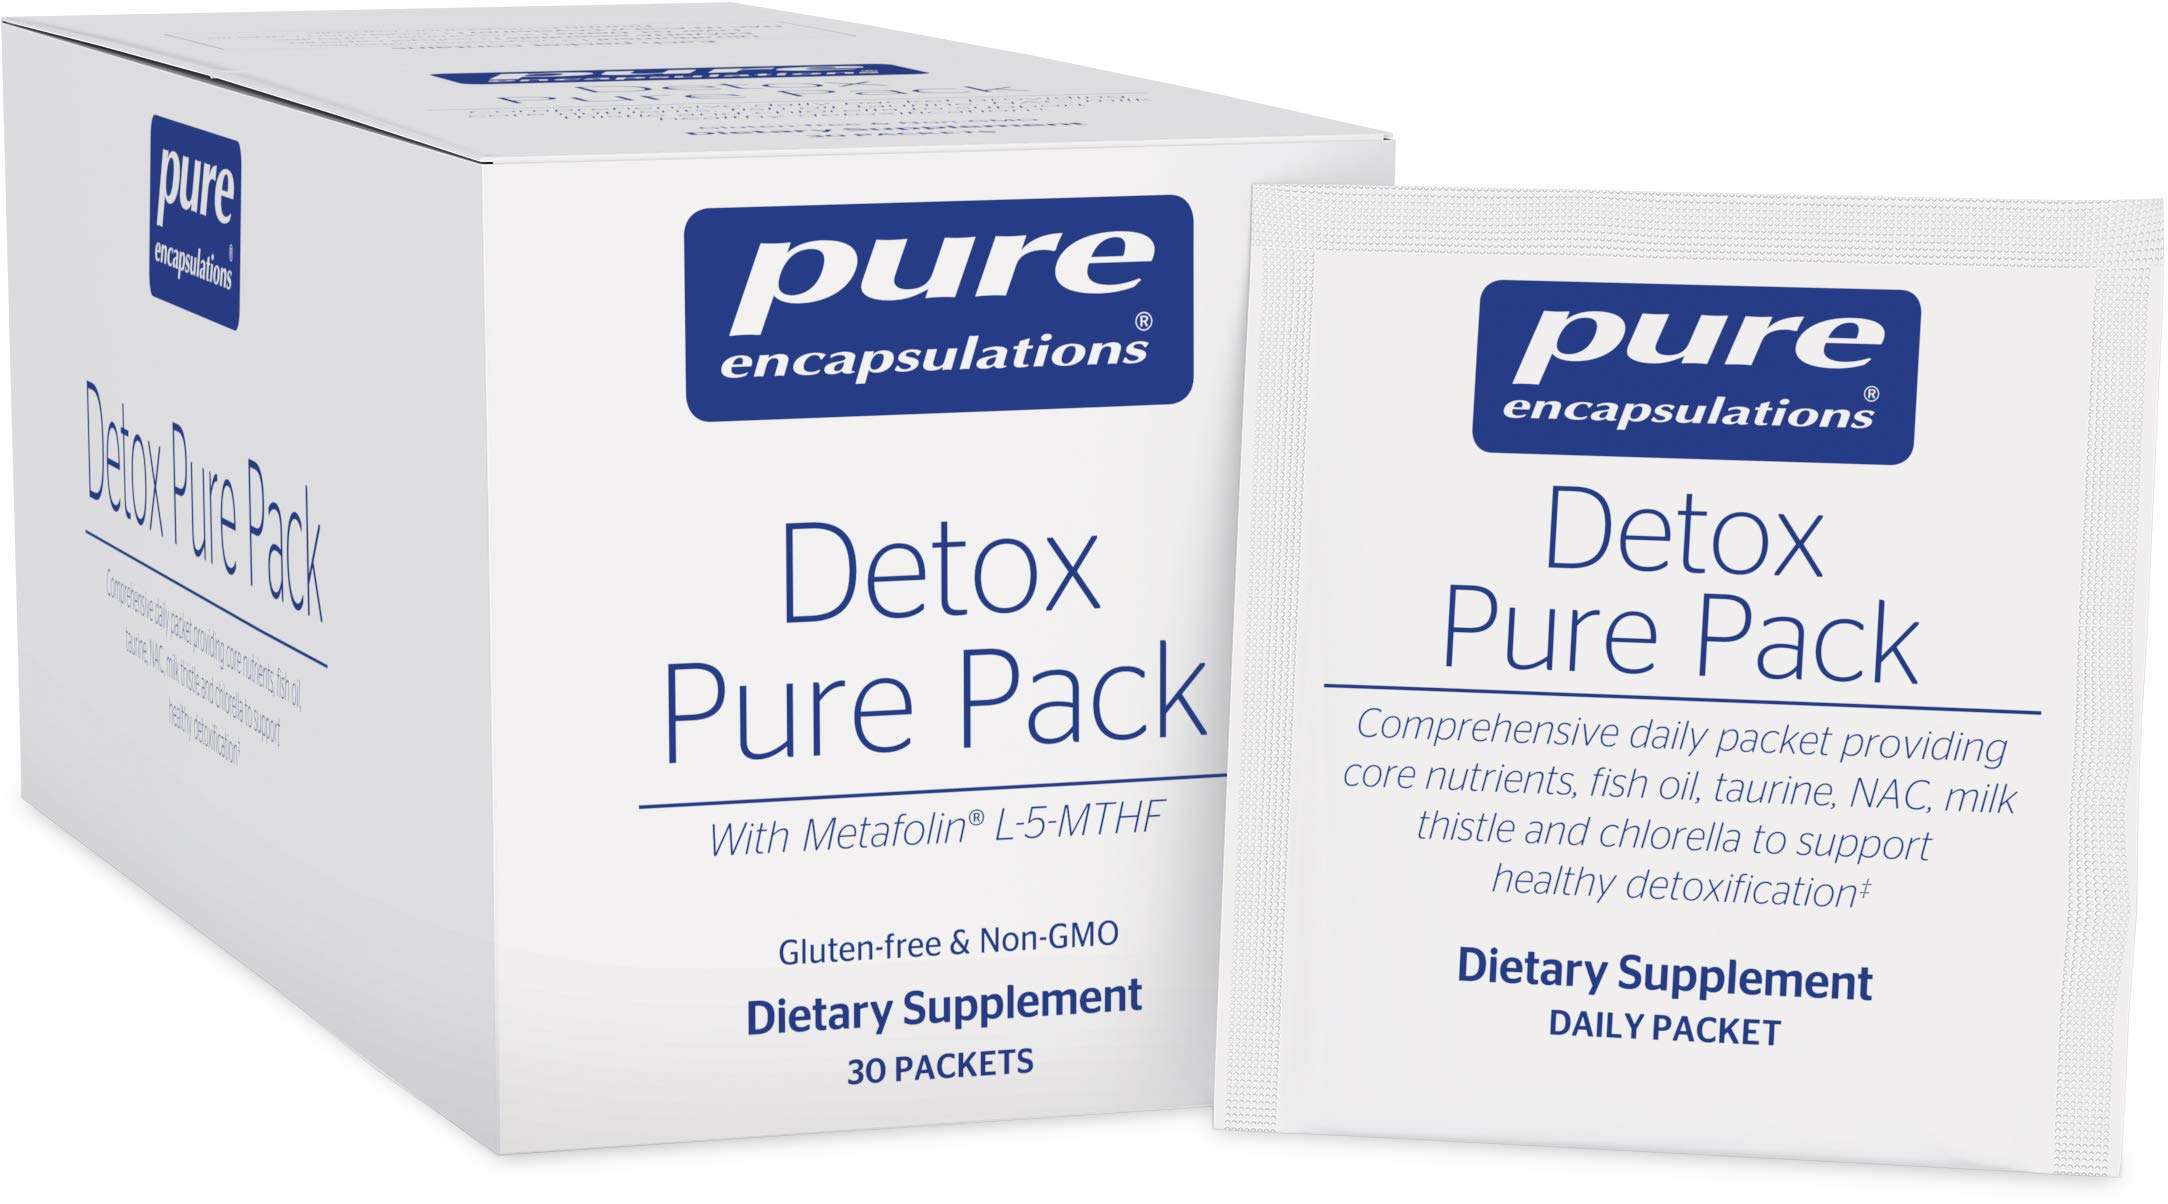 Pure Encapsulations - Detox Pure Pack - Daily Packet with Metafolin L-5-MTHF - 30 Packets